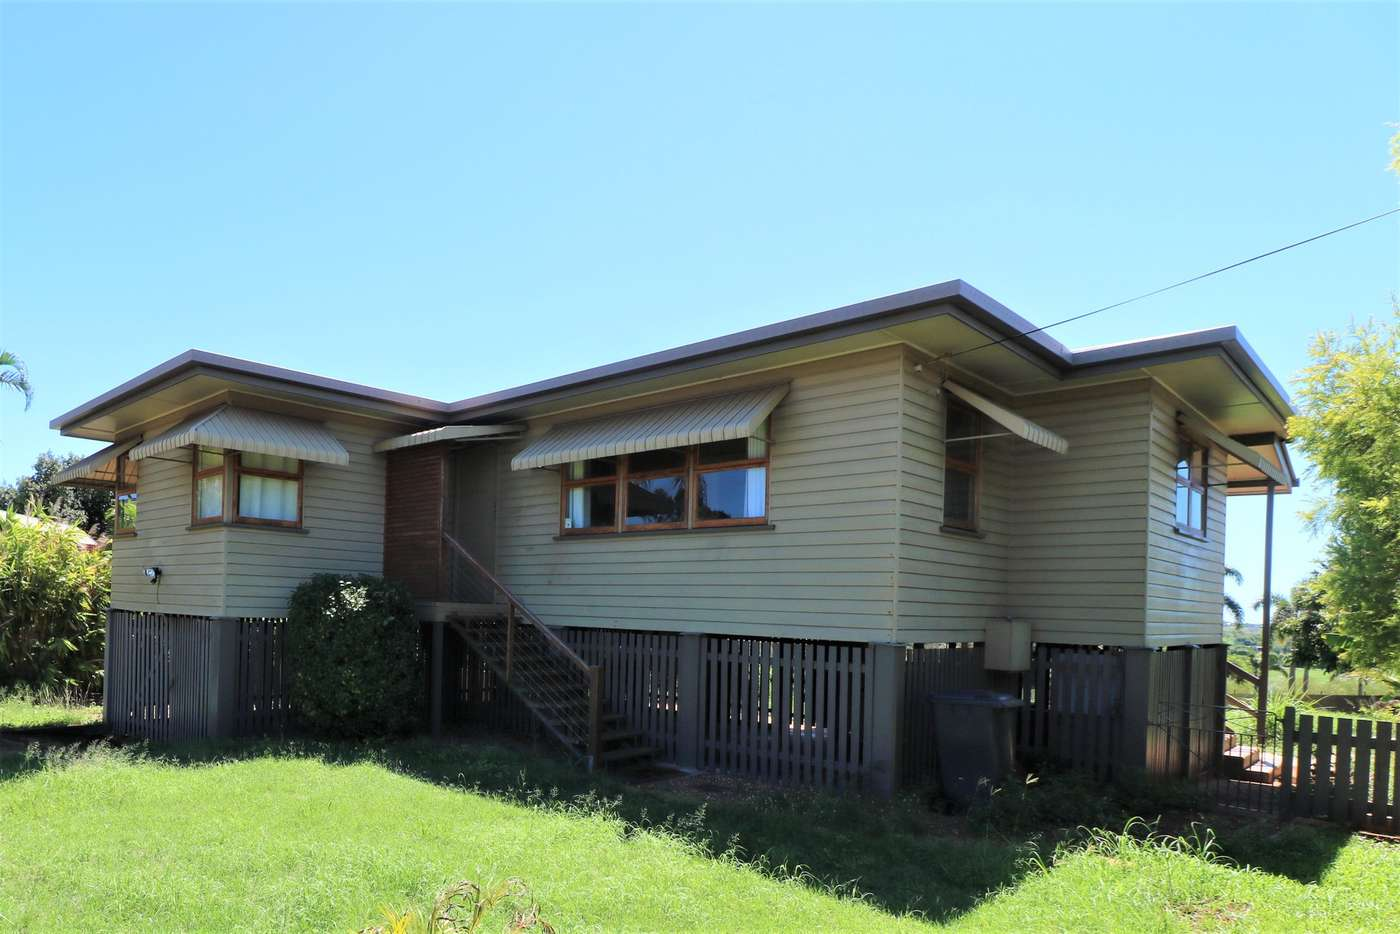 Main view of Homely house listing, 127 Churchill Street, Childers QLD 4660